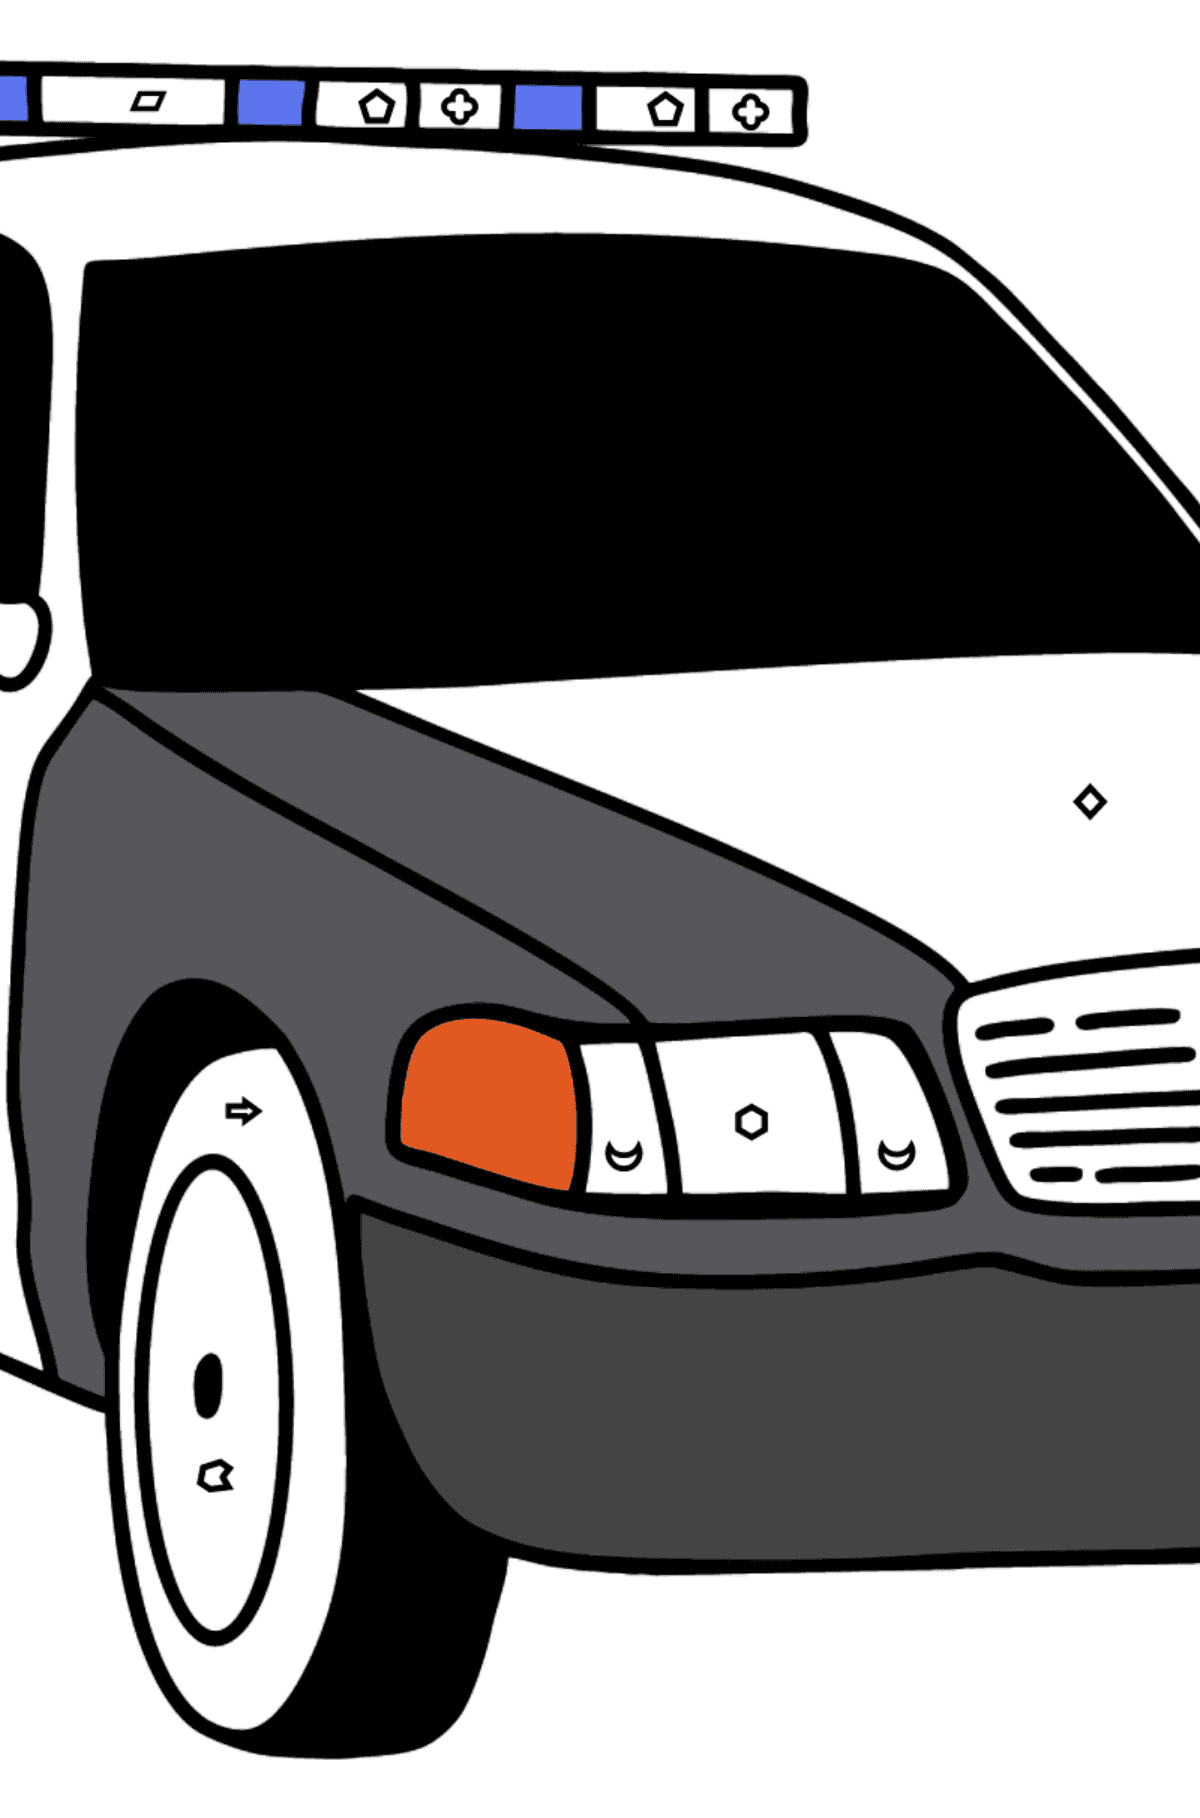 US Police Car coloring page - Coloring by Geometric Shapes for Kids